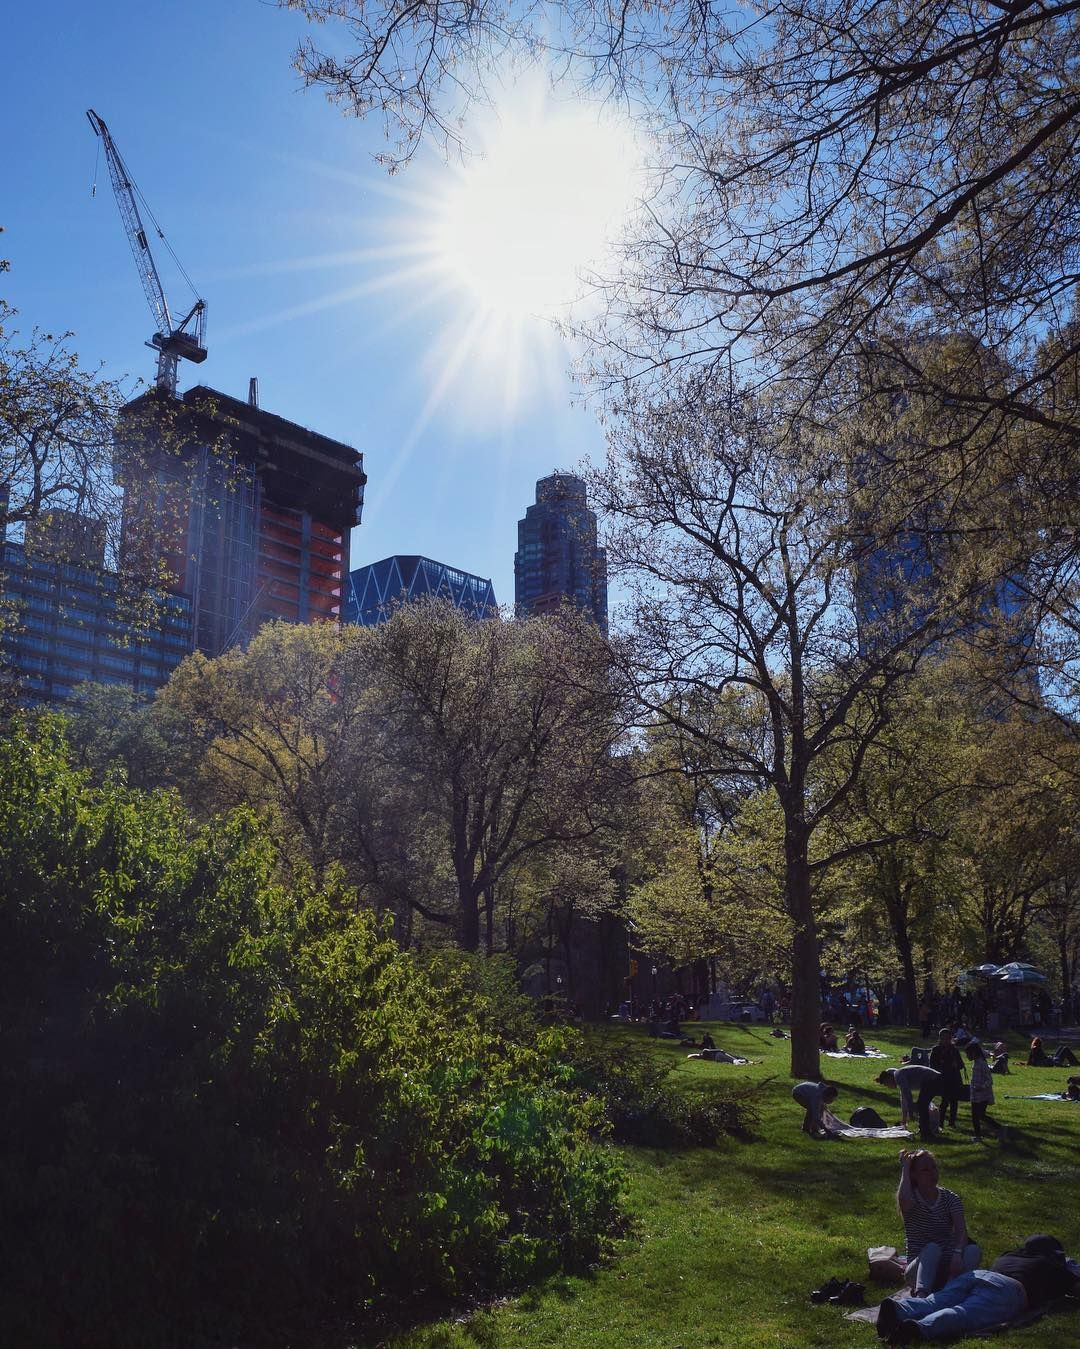 provocative-planet-pics-please.tumblr.com Central ParkNY  by martin_lutther https://www.instagram.com/p/BFETRPGGdTl/